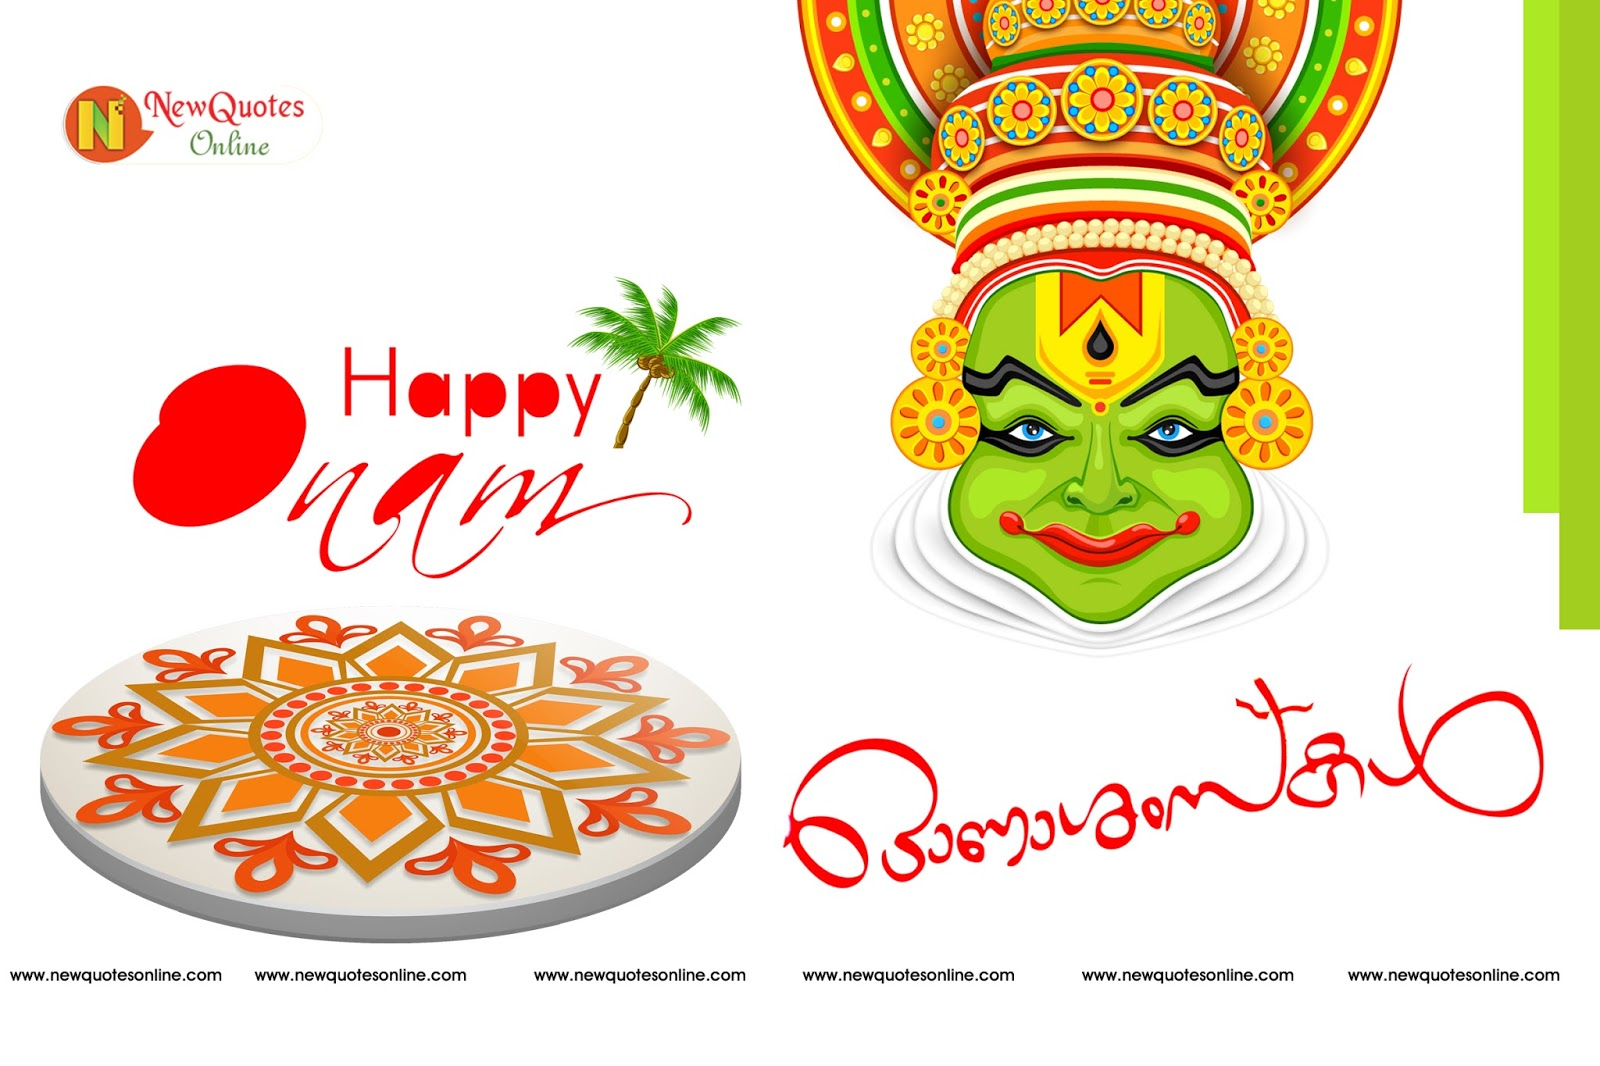 Happy Onam Greetings In Malayalam And English 2016 New Quotes